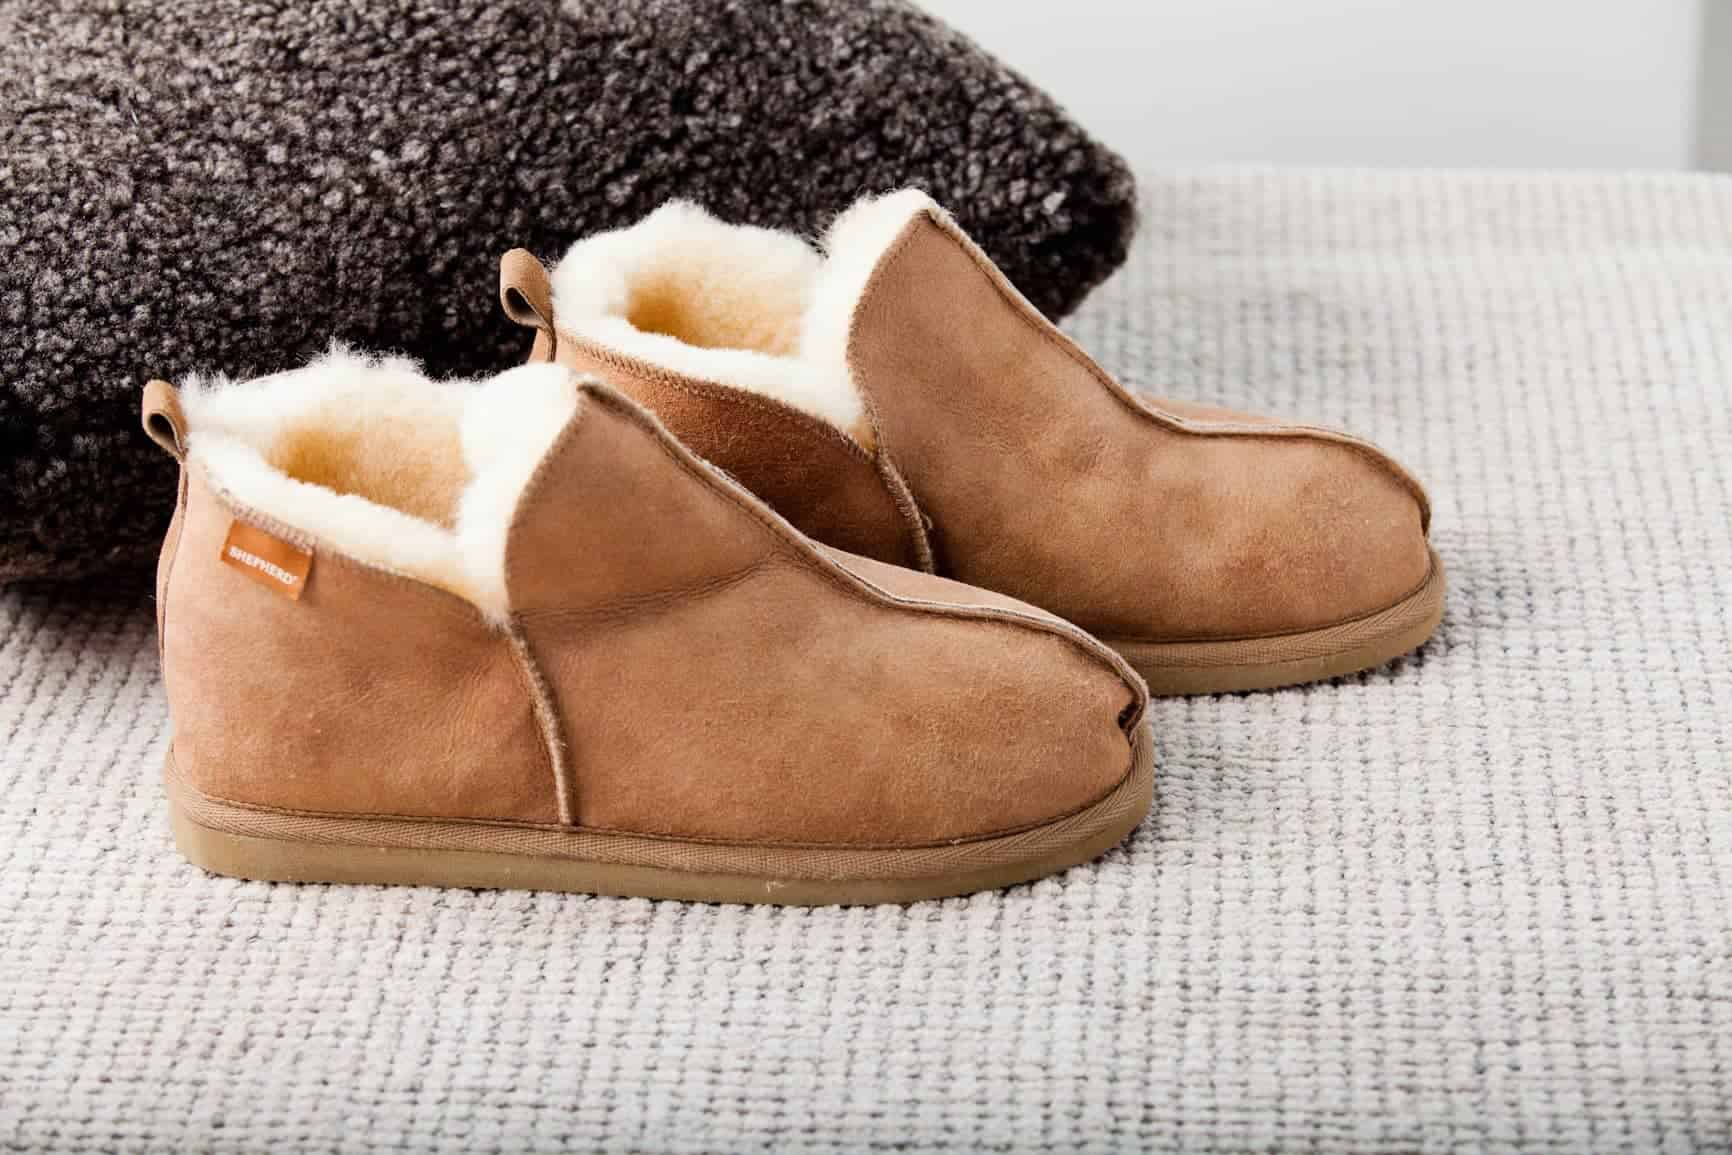 10-Best-Sheepskin-Boots-Review-Buyers-Guide